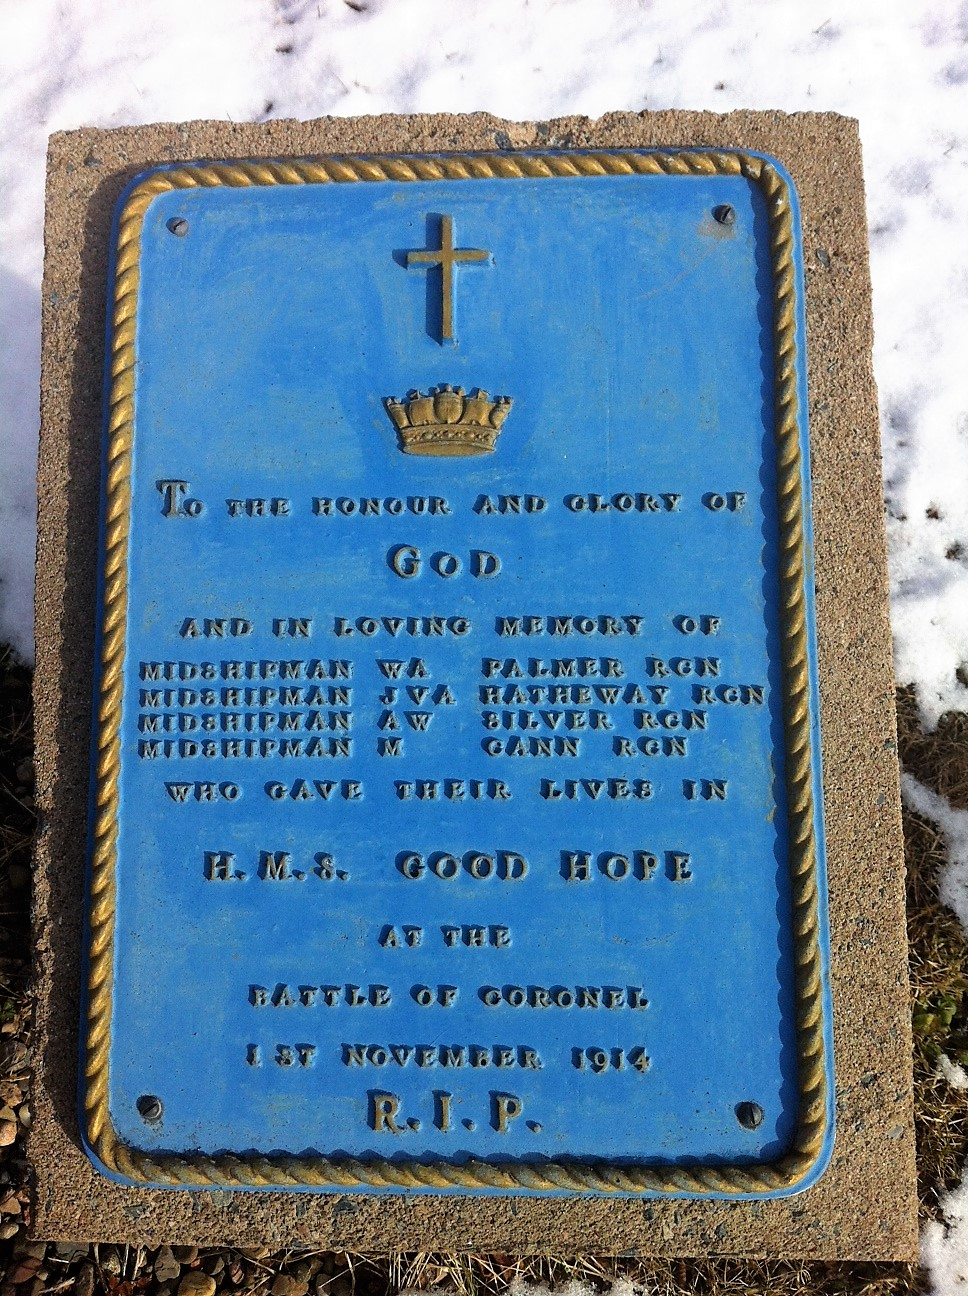 Memorial– The memorial plaque at Canadian Forces Base Halifax to Arthur Silver and his three fellow RCN Midshipmen who died in HMS Good Hope at the Battle of Coronel on 1 November 1914 during World War I.  The location of the main Canadian naval base, Halifax was where Arthur Silver had undergone his initial training before joining HMS Good Hope.